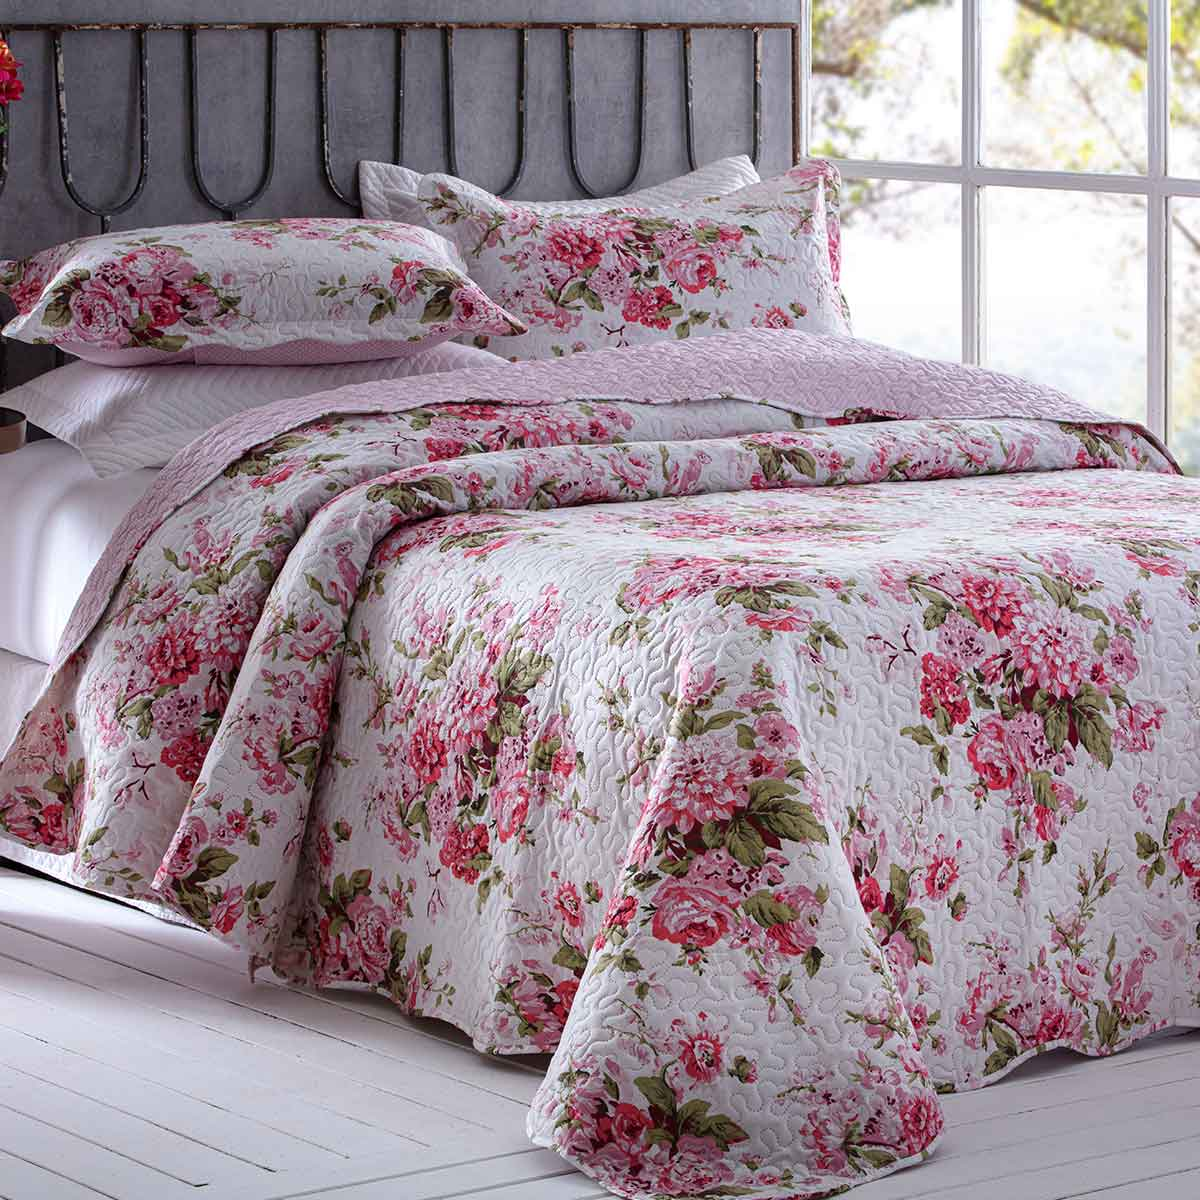 Cobreleito patchwork ultra queen 3pcs Estela 5